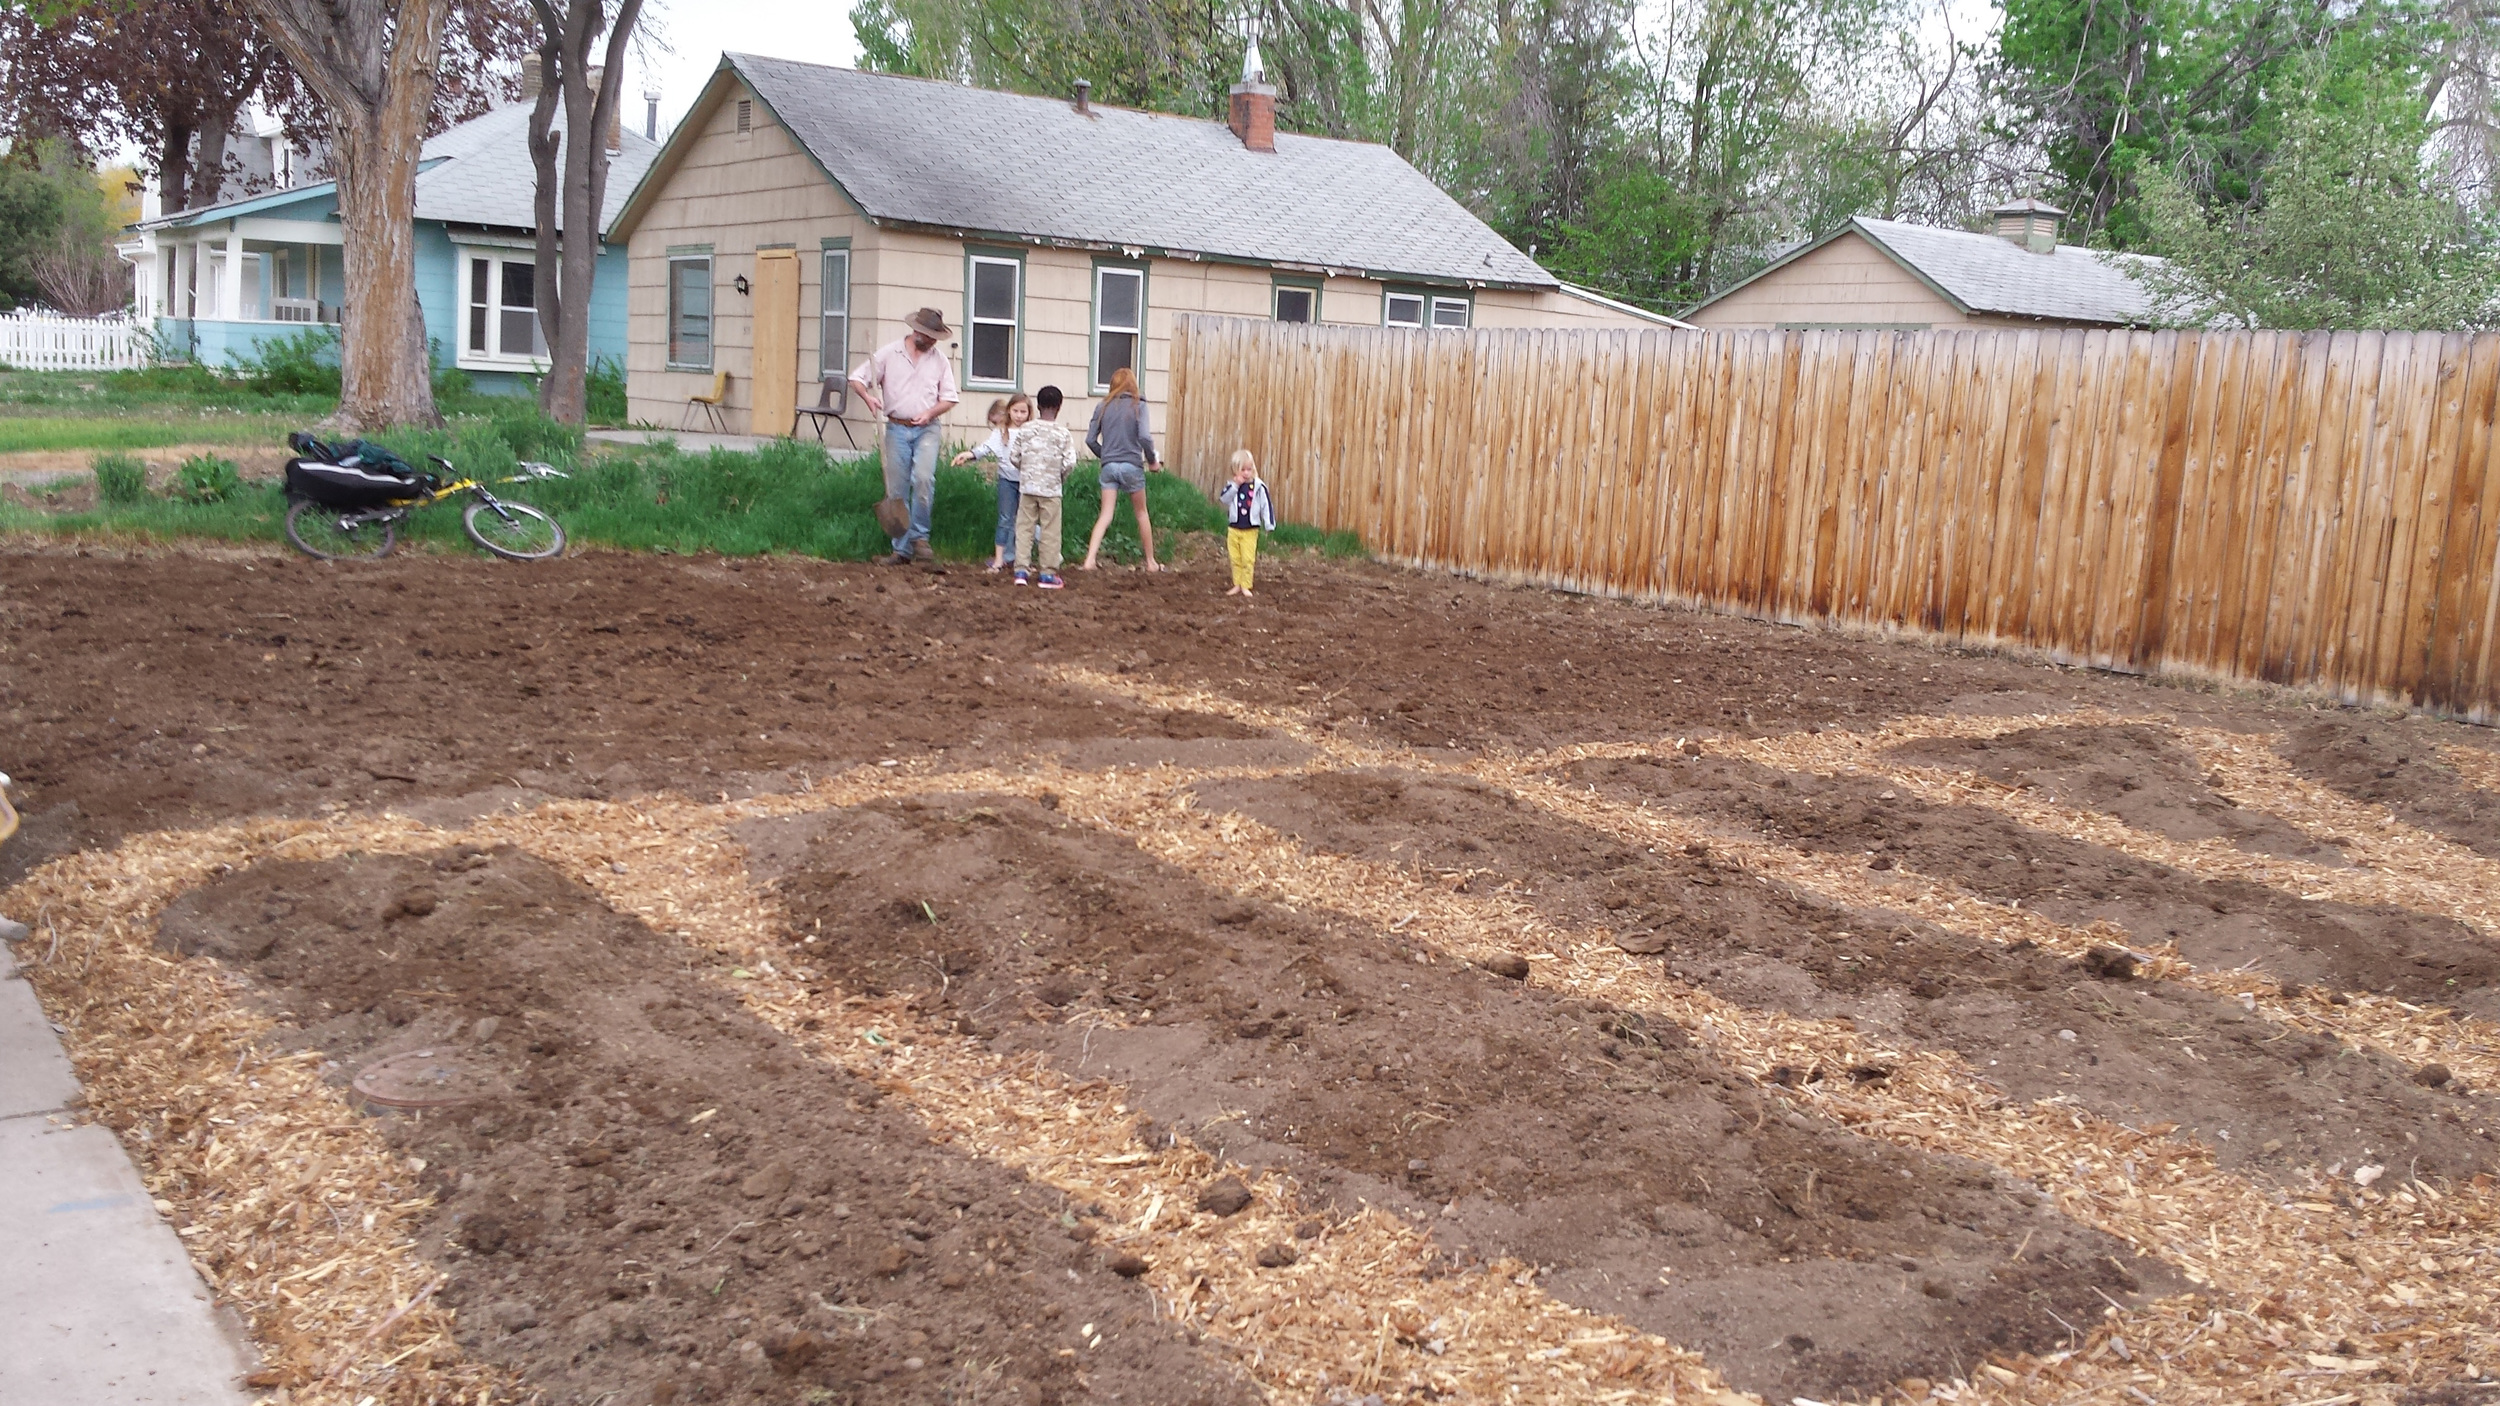 The kids helping Will plant our three sisters garden: corn, beans and squash